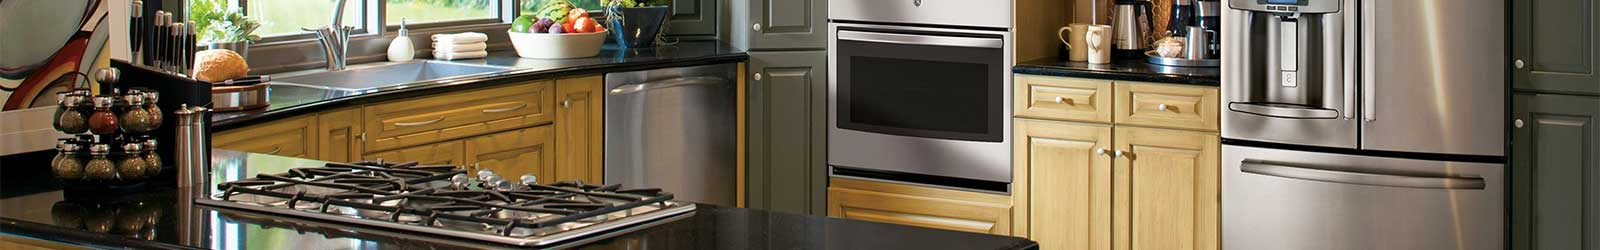 Appliance Specialists